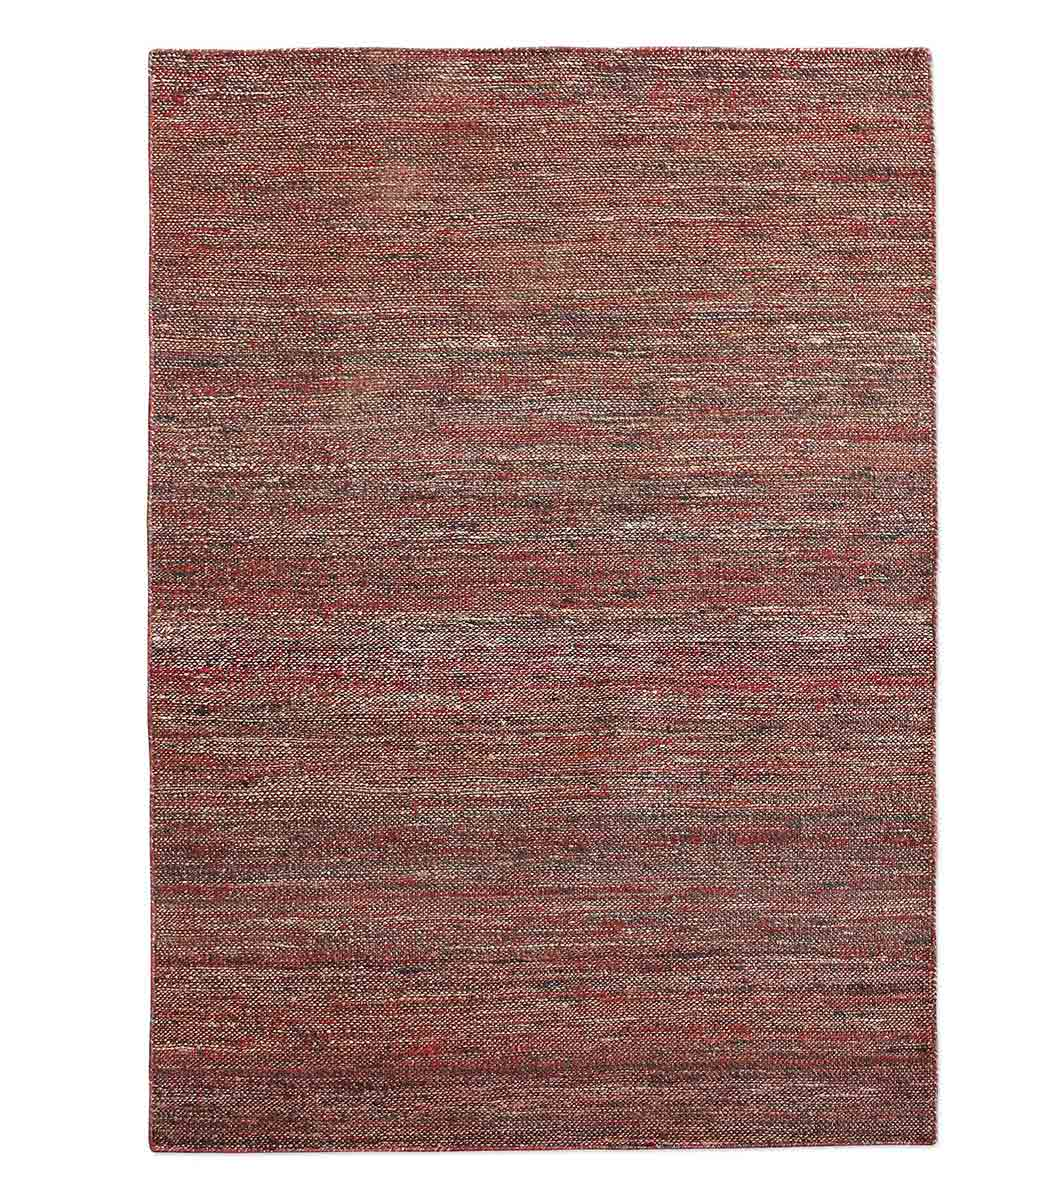 Uttermost Seeley 9 x 12 Rug - Rust